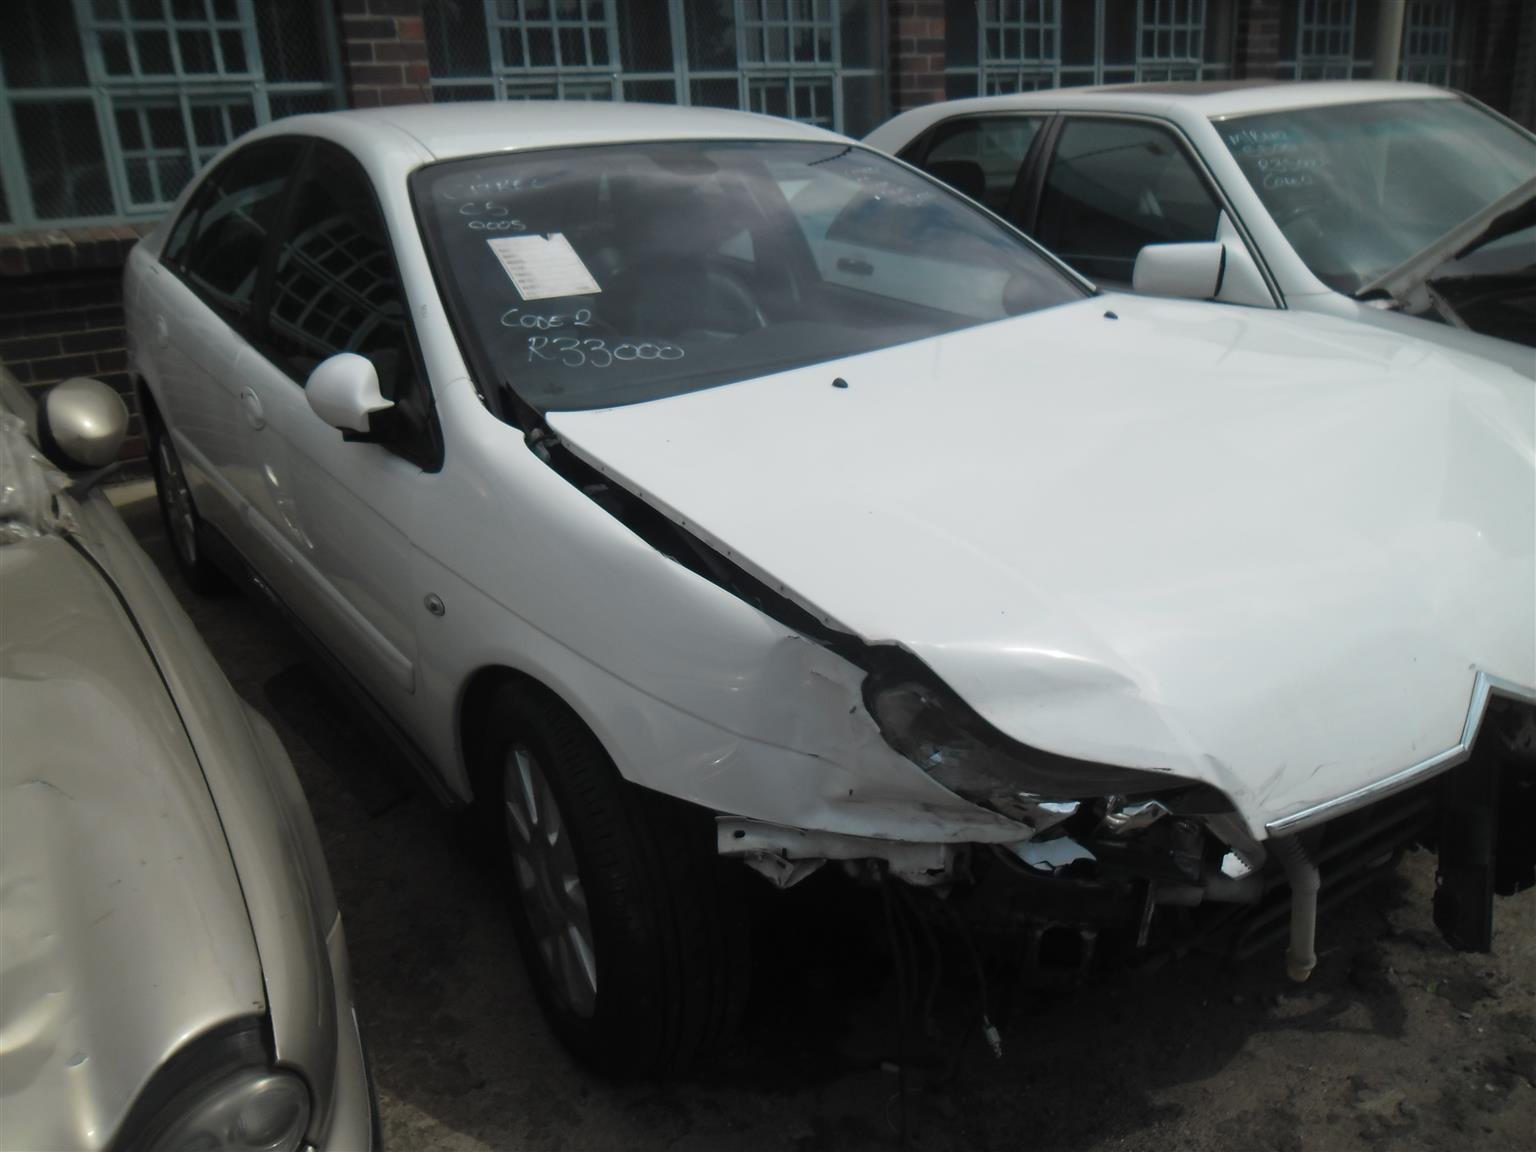 CITREON C5 V6 STRIPPING FOR SPARES